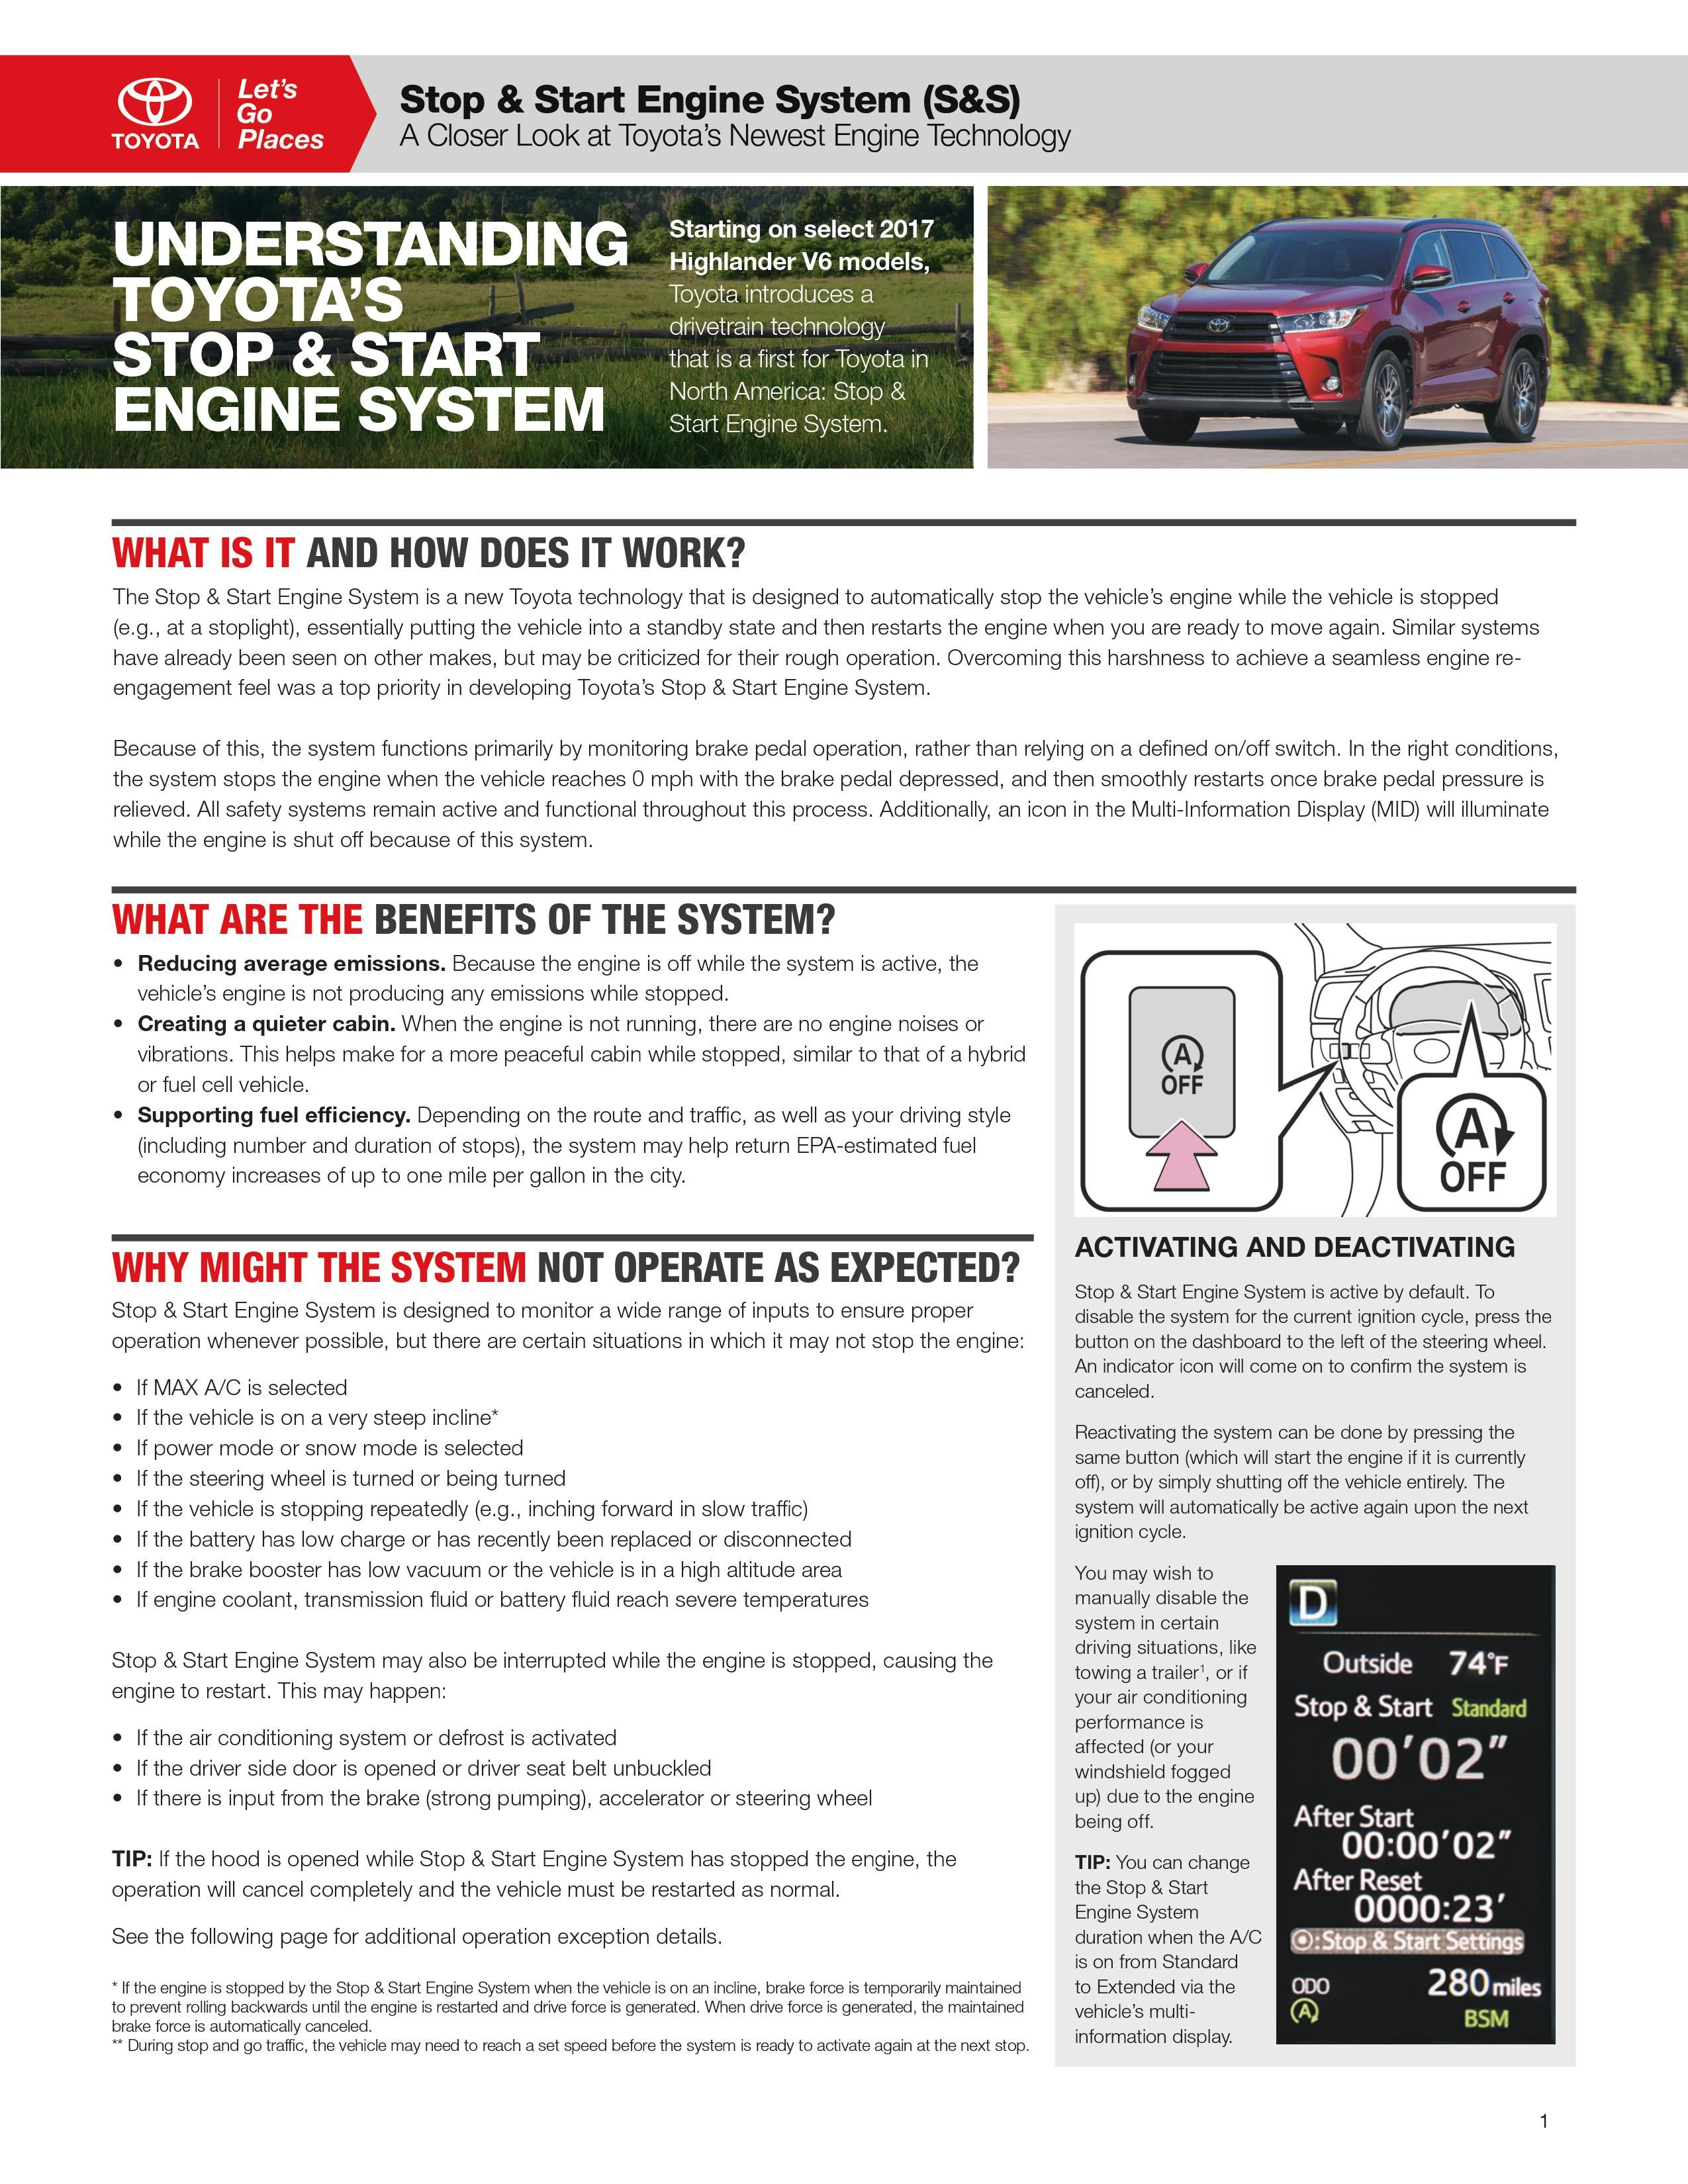 Here S An Explanation Of The Toyota Stop And Start Engine System